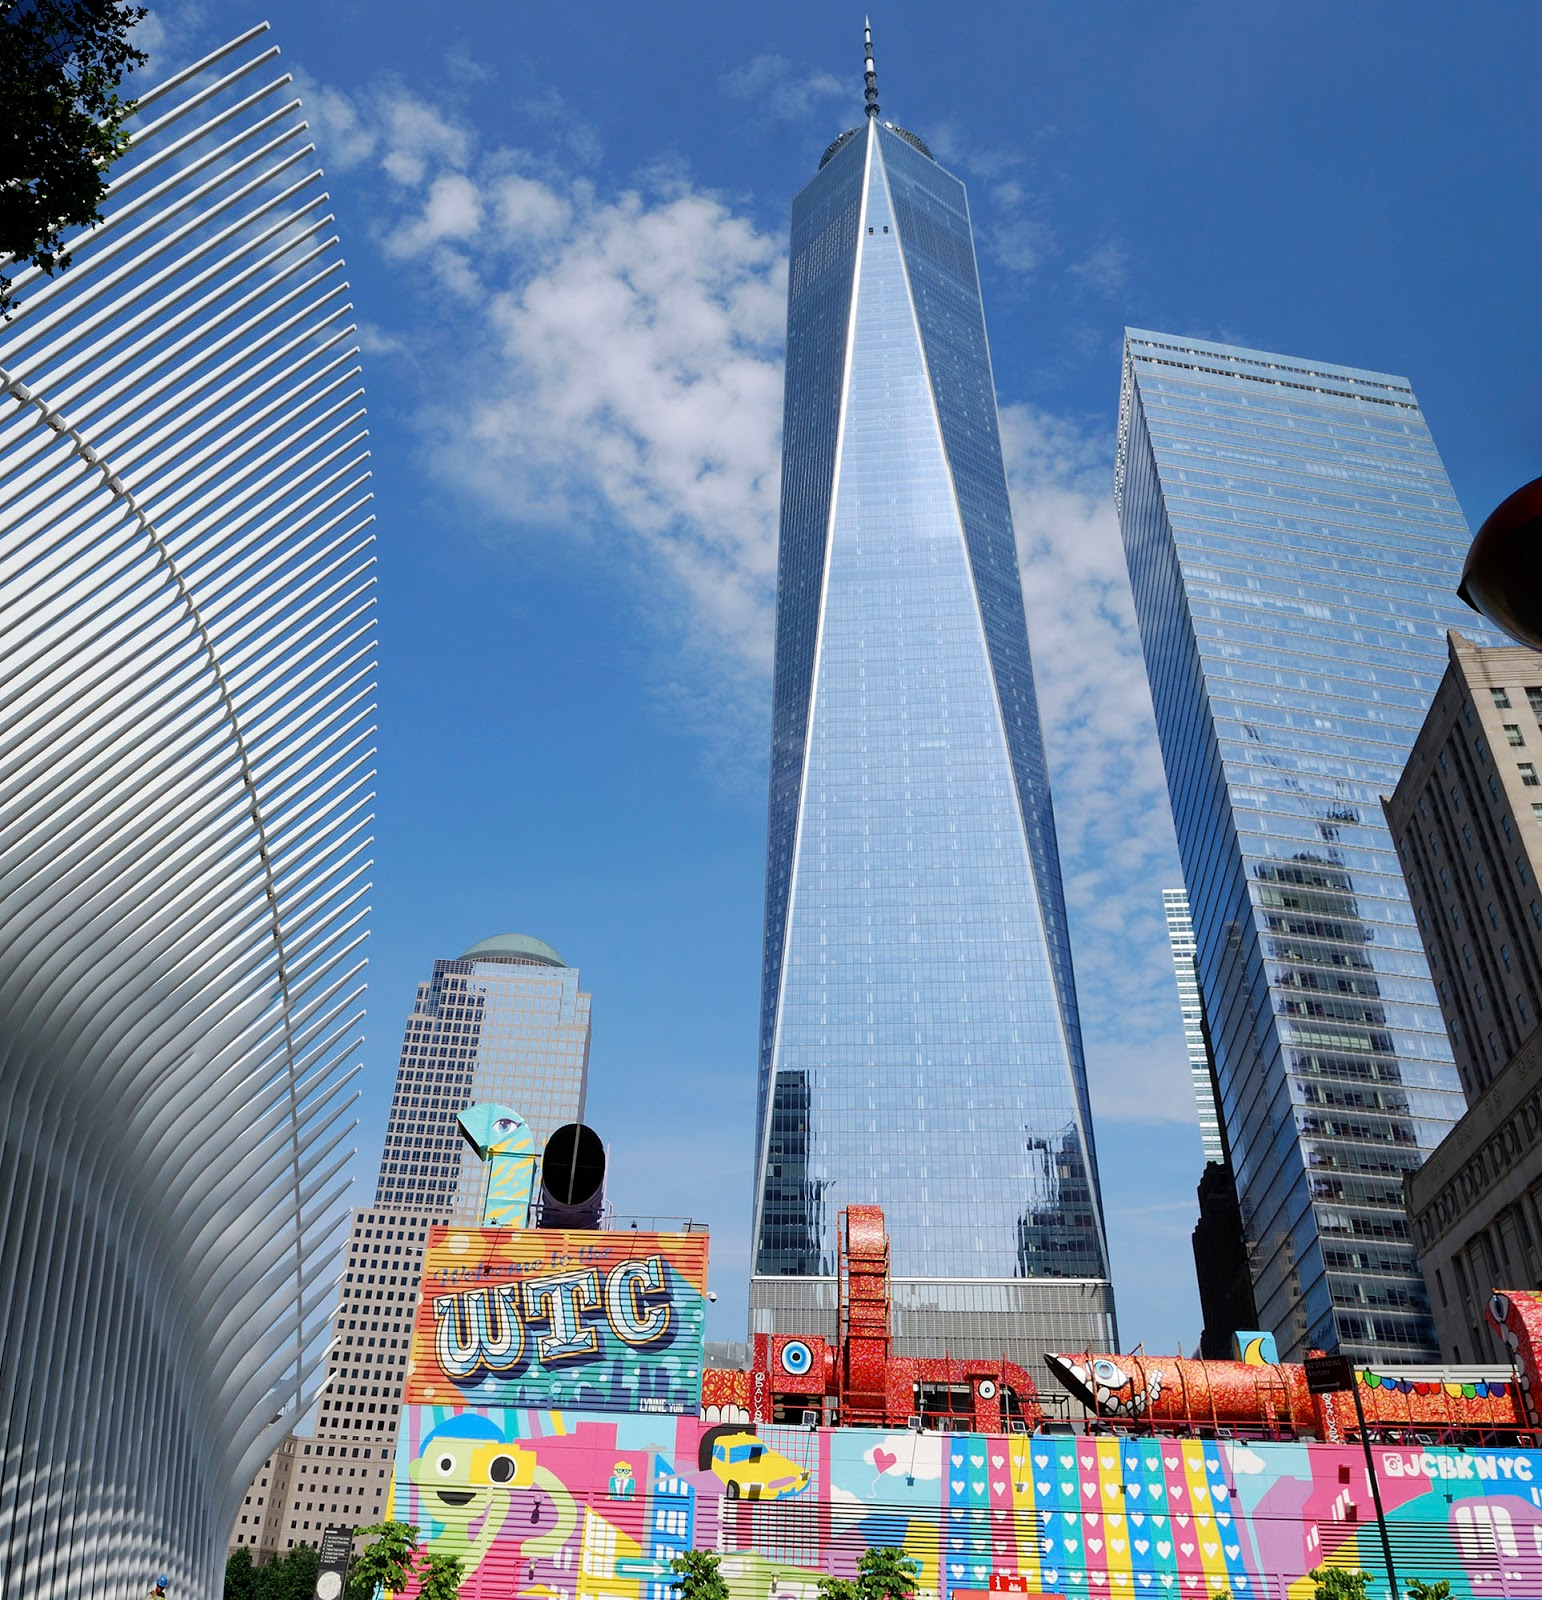 world trade center wtc oculus one world observatory oculus new york itinerary guide plan